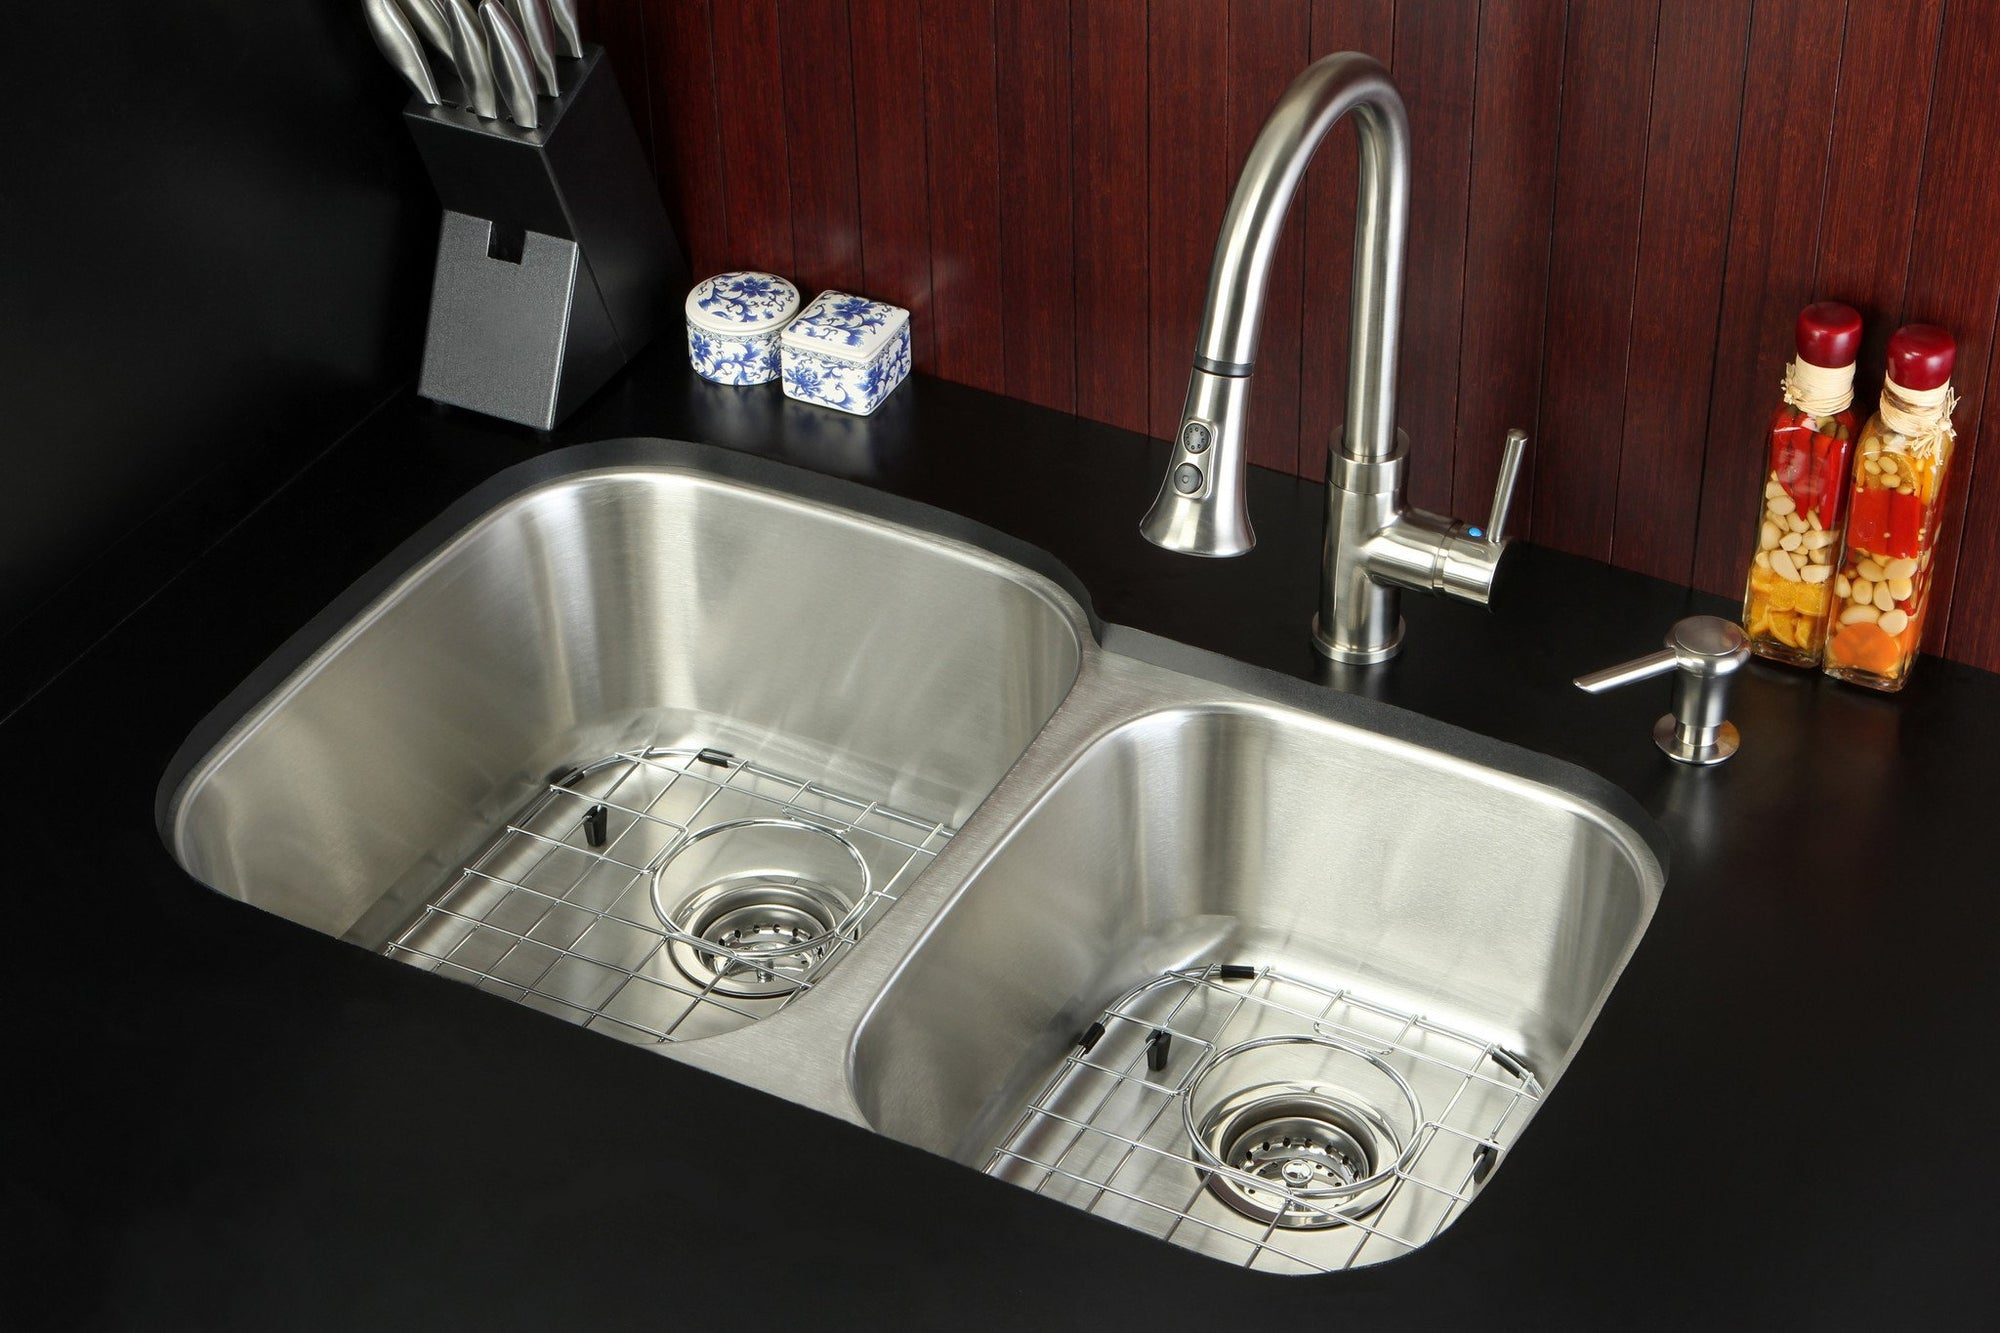 Stainless Steel Undermount Double Bowl Kitchen Sink Faucet Accessory Faucetlist Com